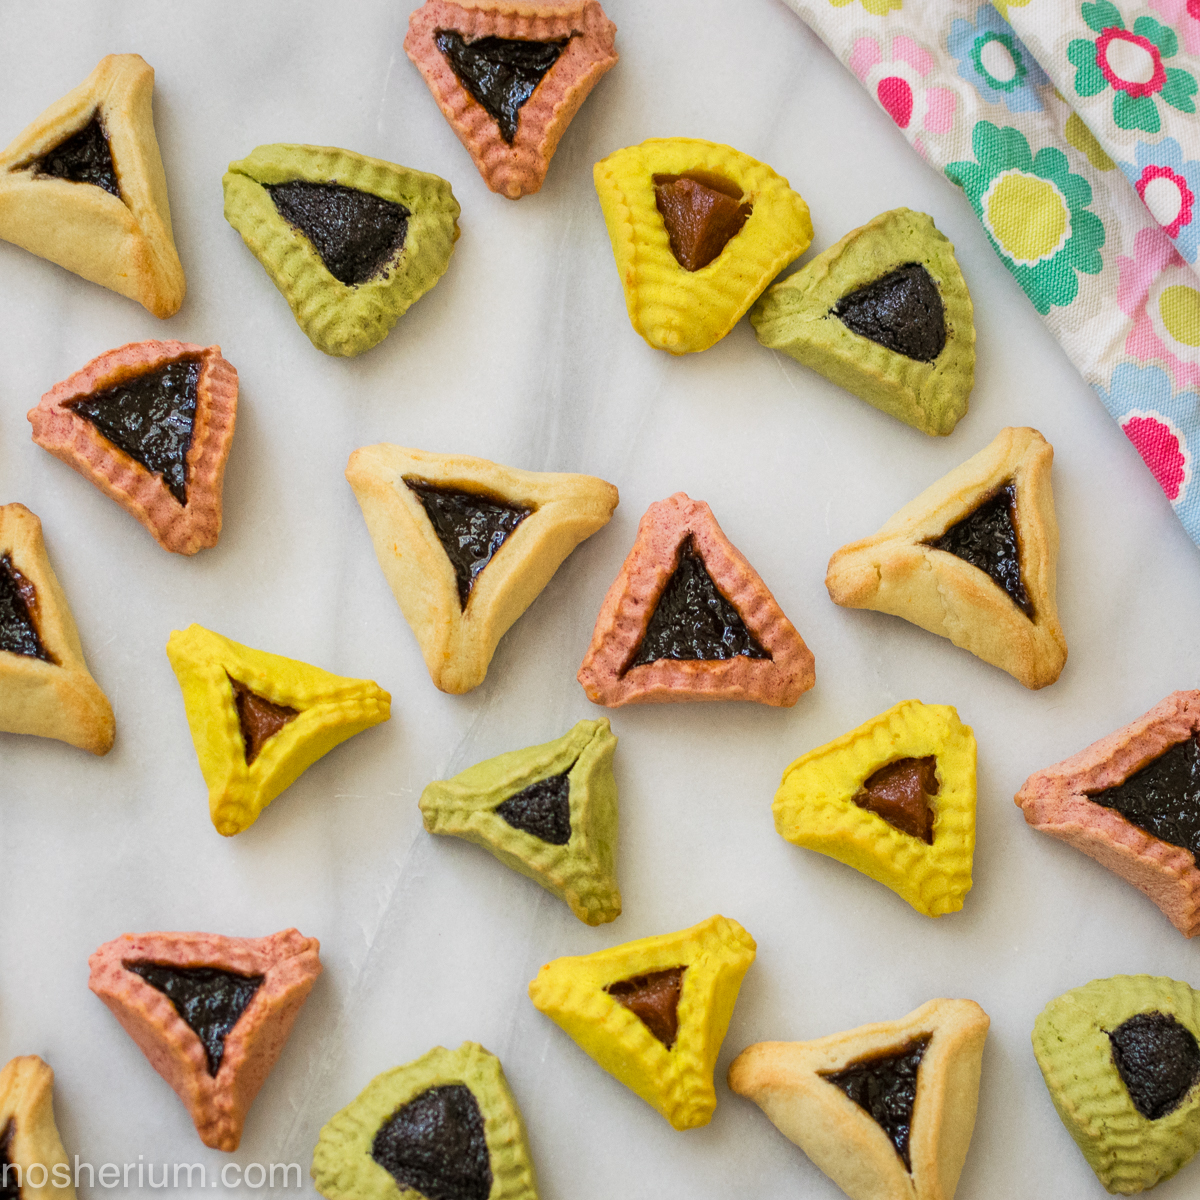 Supernatural Colorful Hamantaschen